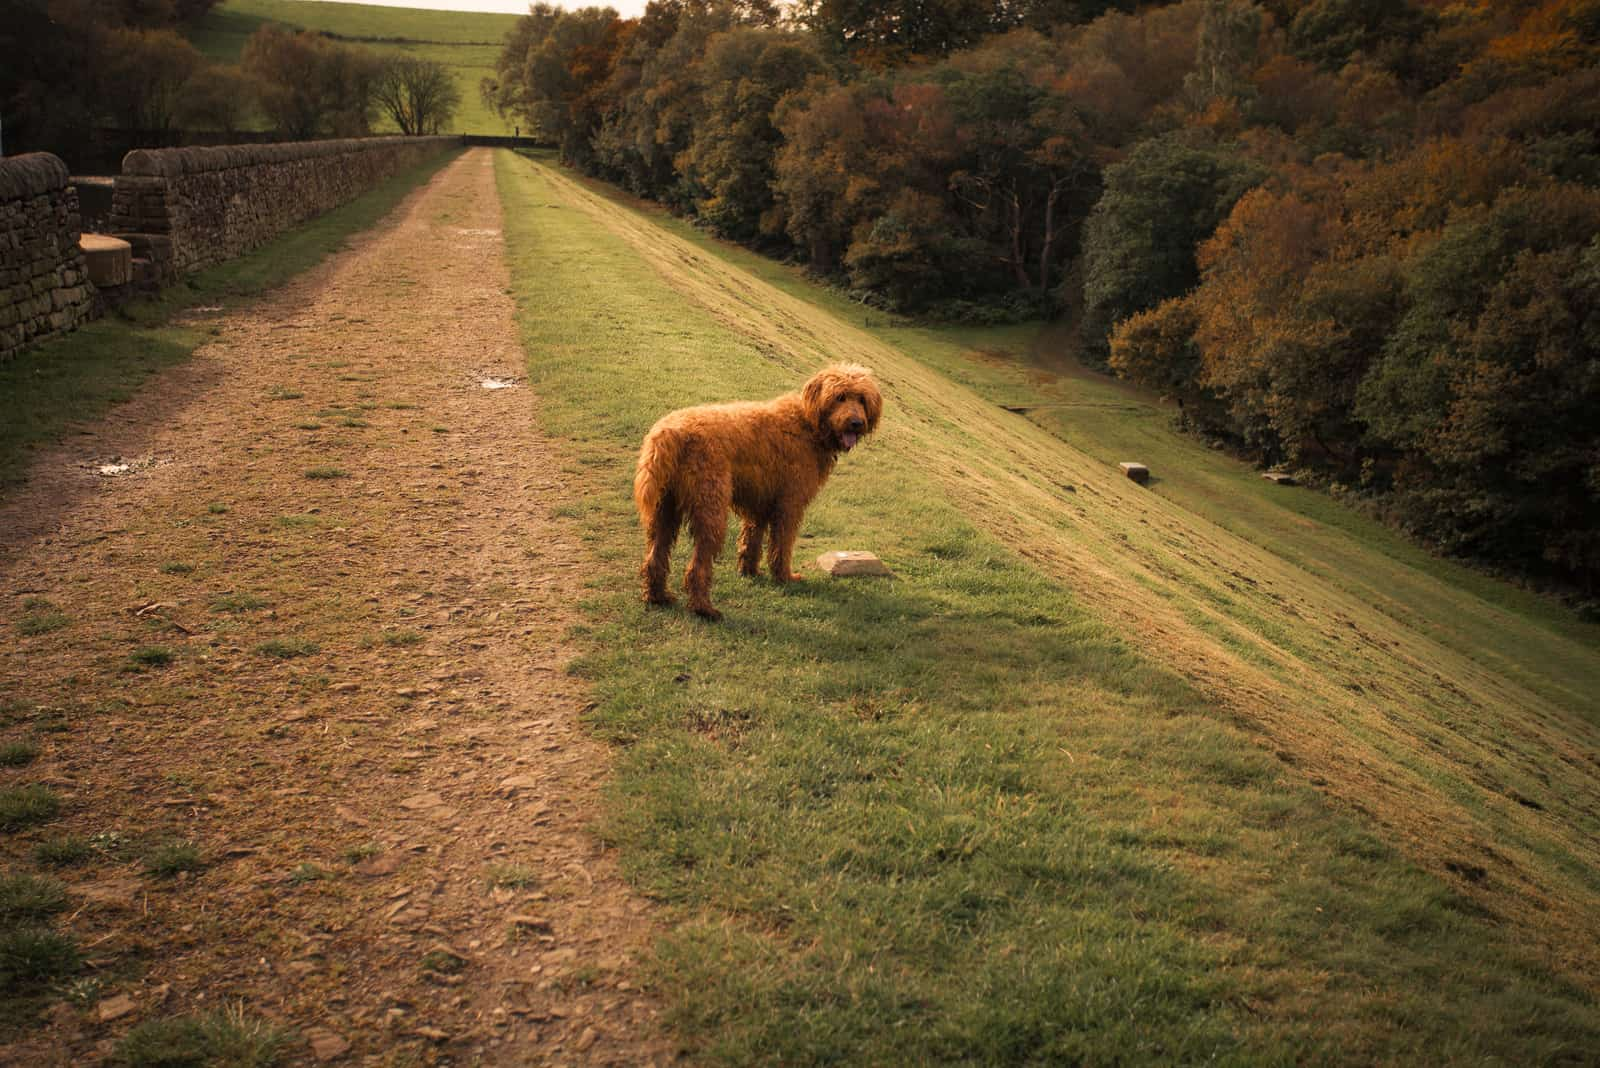 goldendoodle dog stands in a natural autumn setting